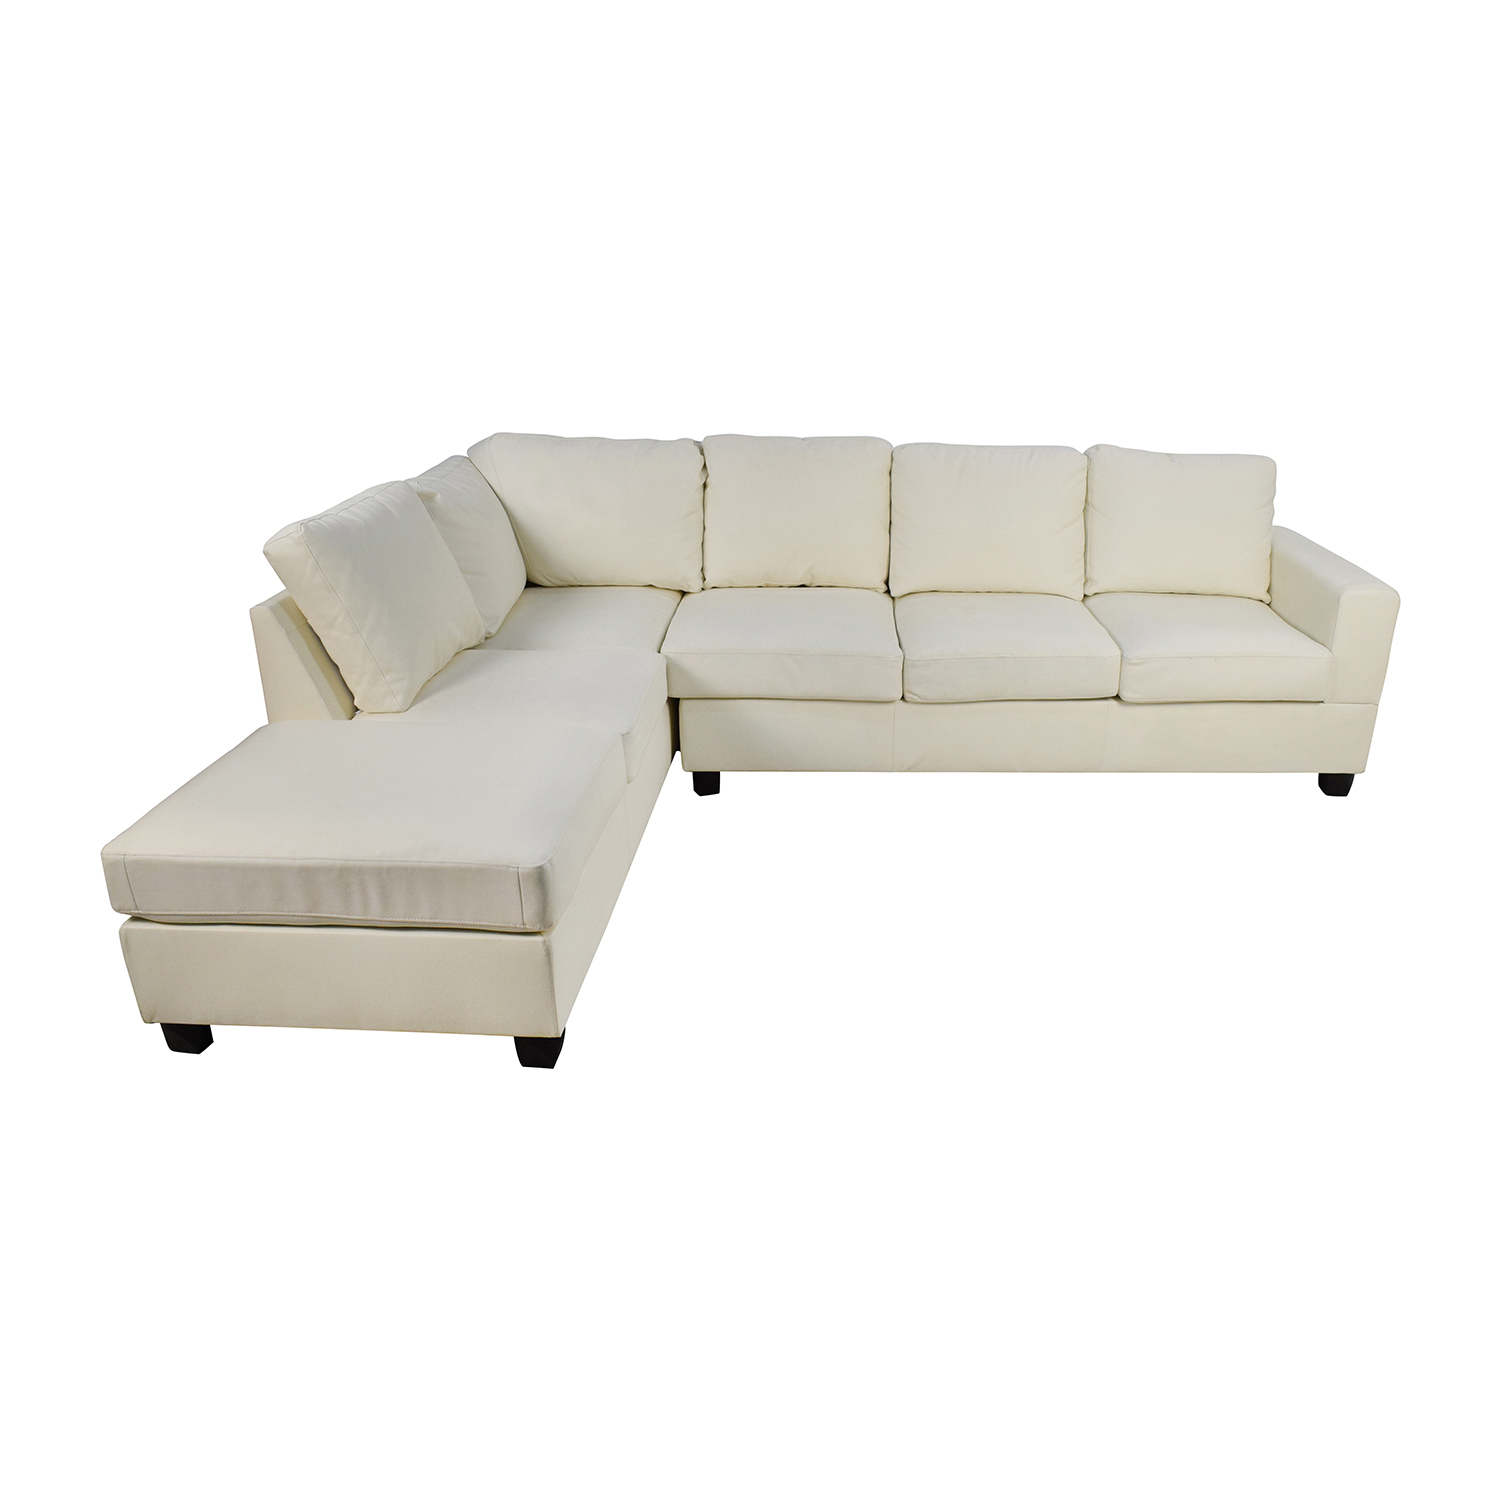 L-Shaped White Leather Sectional / Sofas